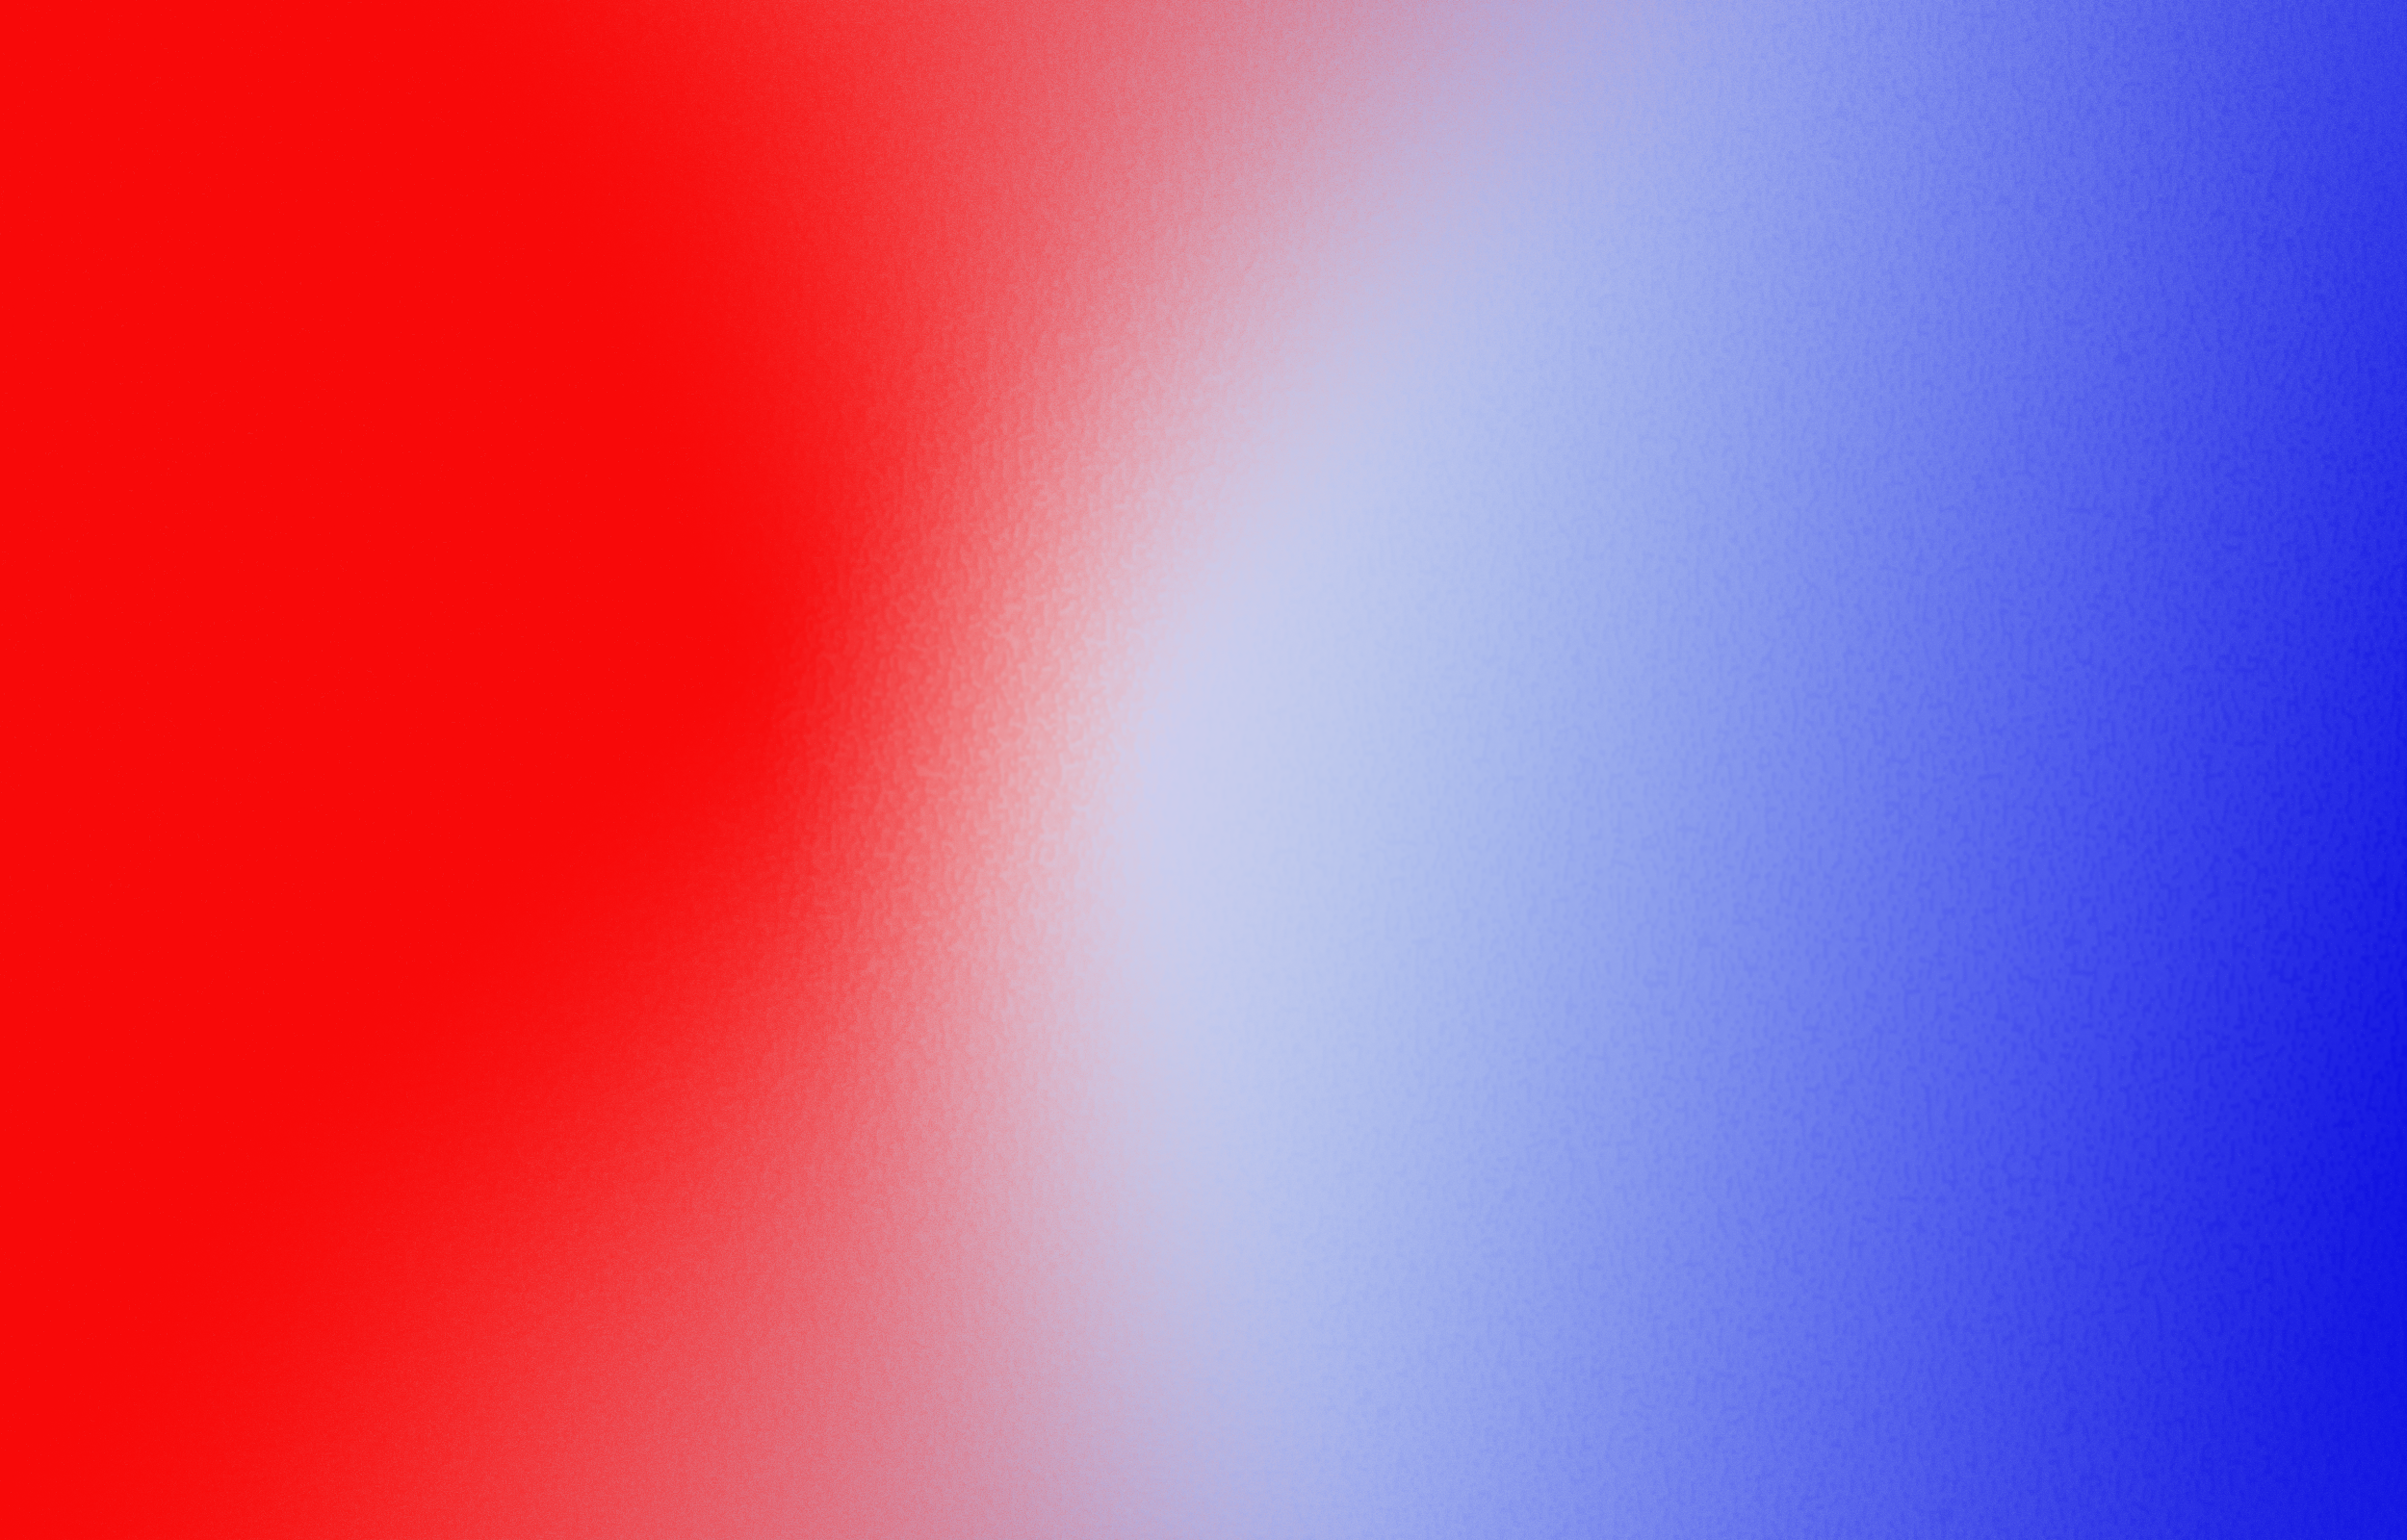 Red White And Blue Backgrounds - WallpaperSafari